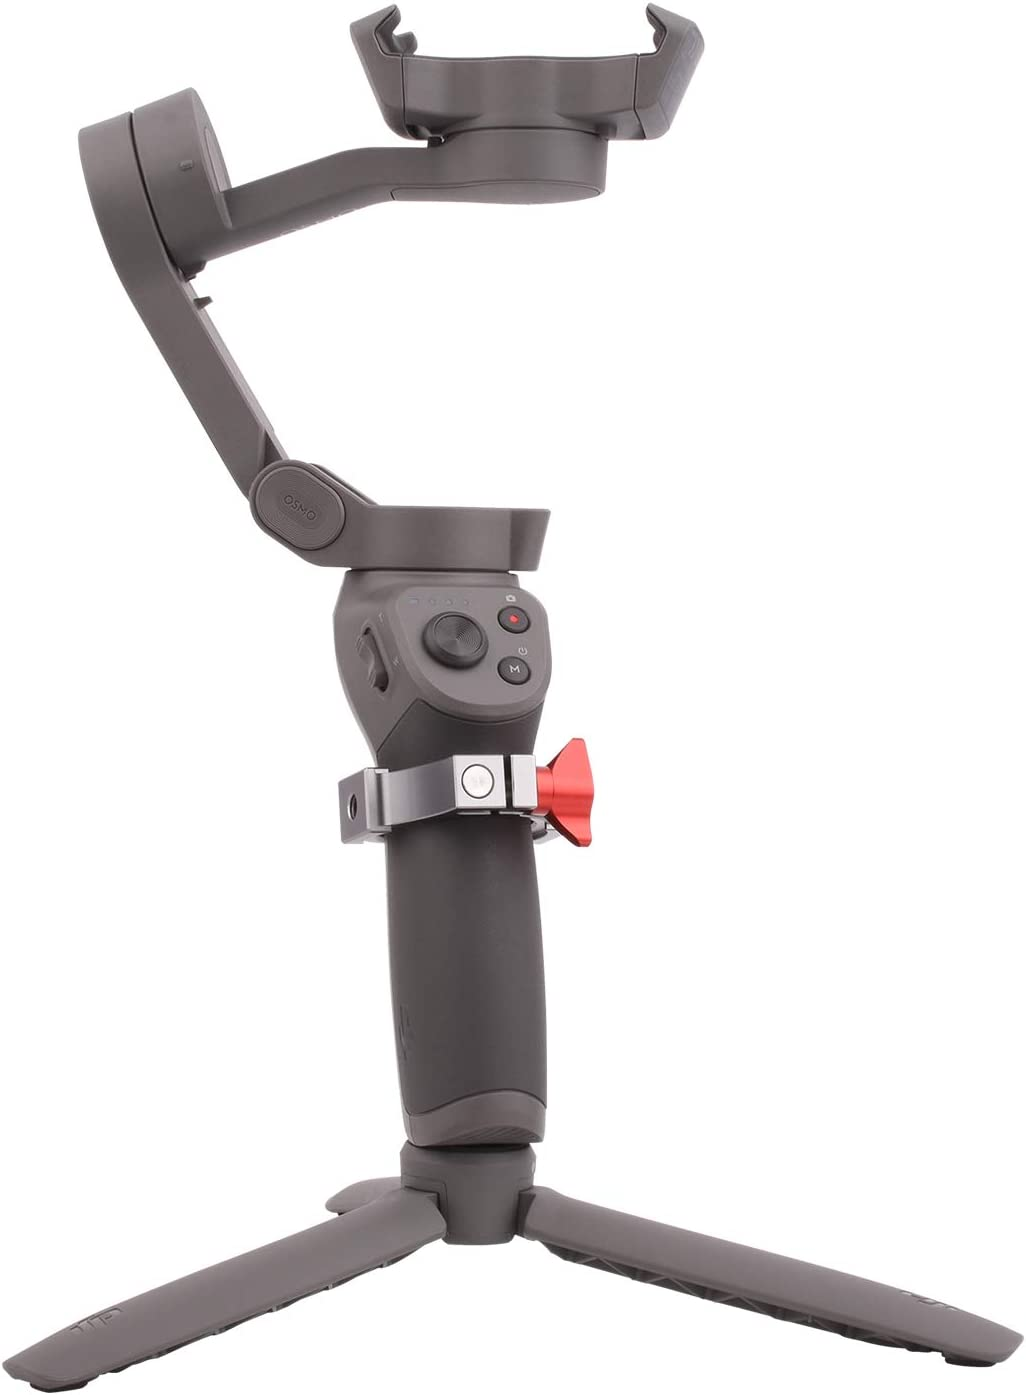 "Applied to Microphone and LED Light Accessory Via 2 Cold Shoe Mount /& Three 1//4/"" Thread Ports Woohoto O-Ring Hot Shoe Adapter for DJI Osmo Mobile 3"